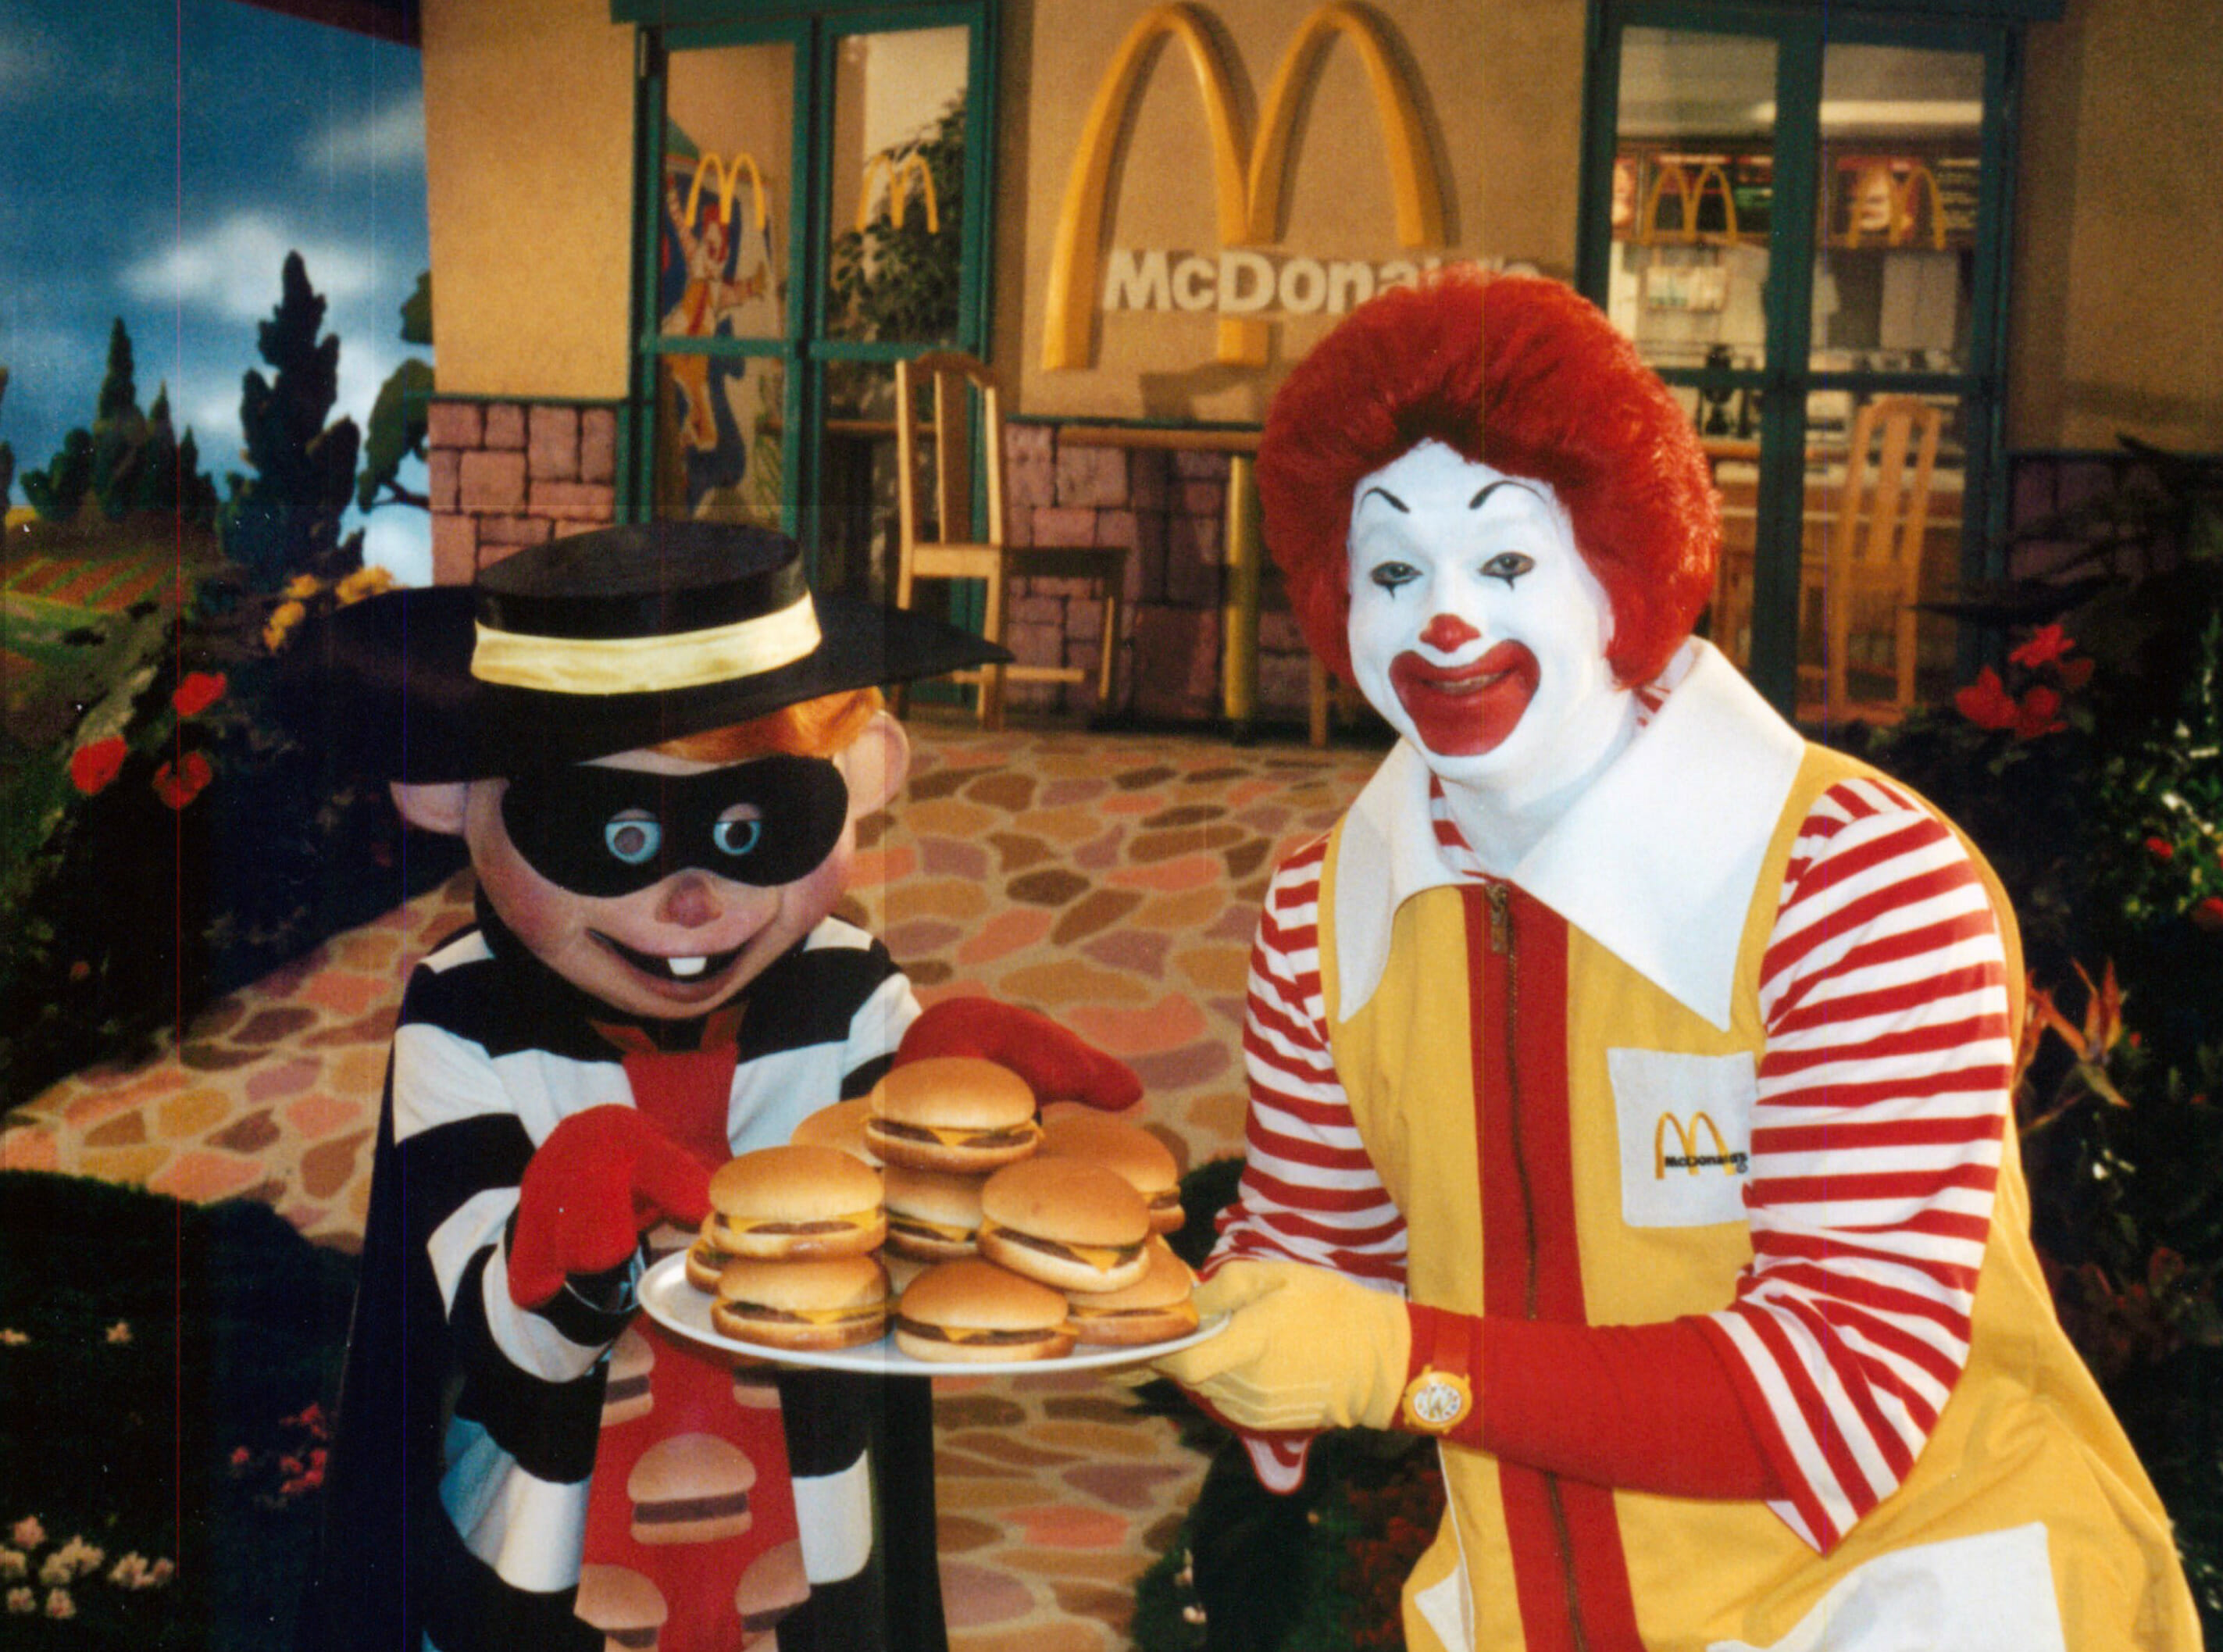 Ronald McDonald and Hamburglar to play extended B2B at EDC's Neon GardenHamburgar Ronald Mcdonald